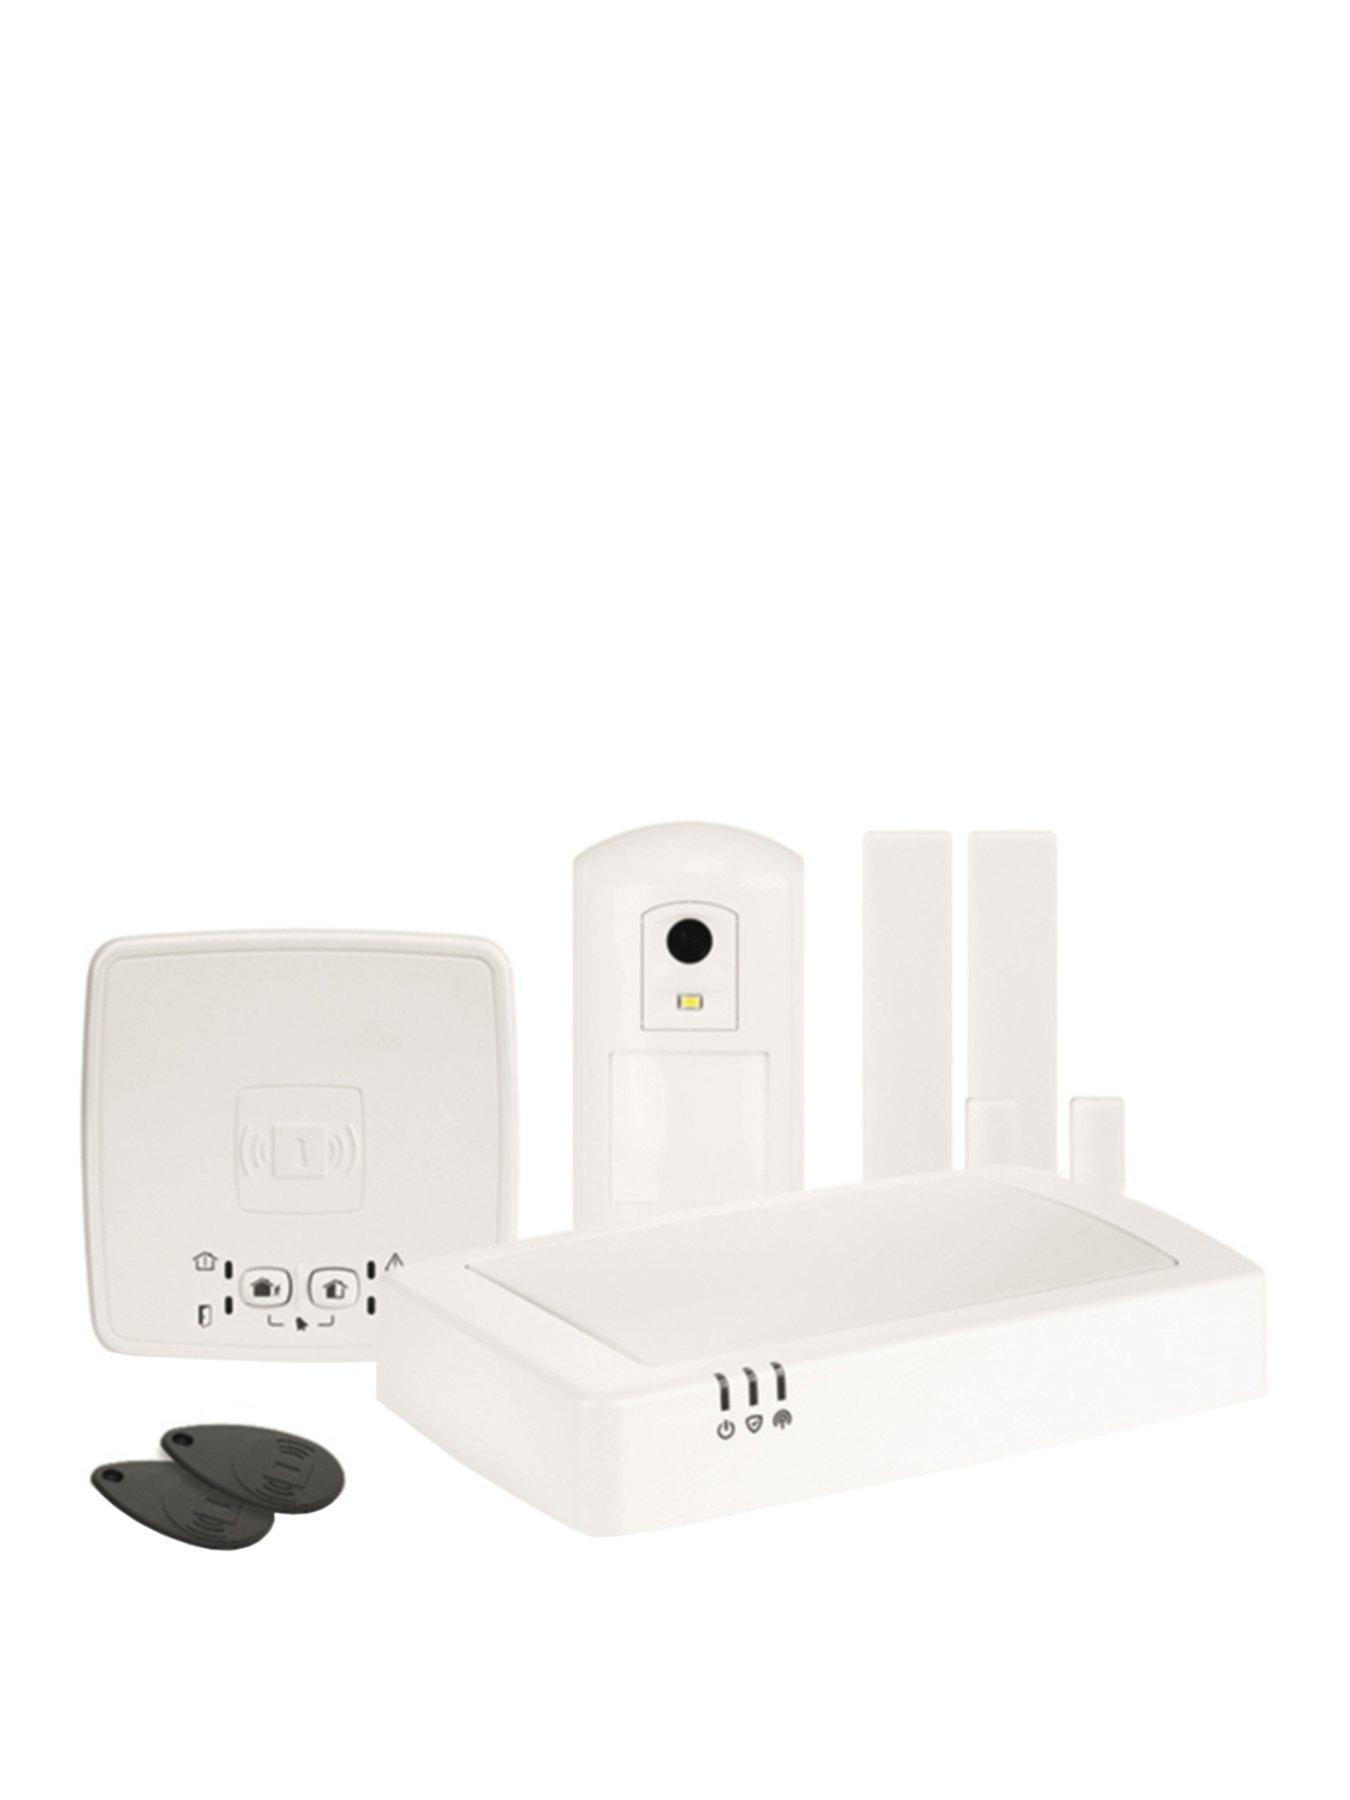 Compare prices for Honeywell Evo Wireless Alarm Kit With Camera